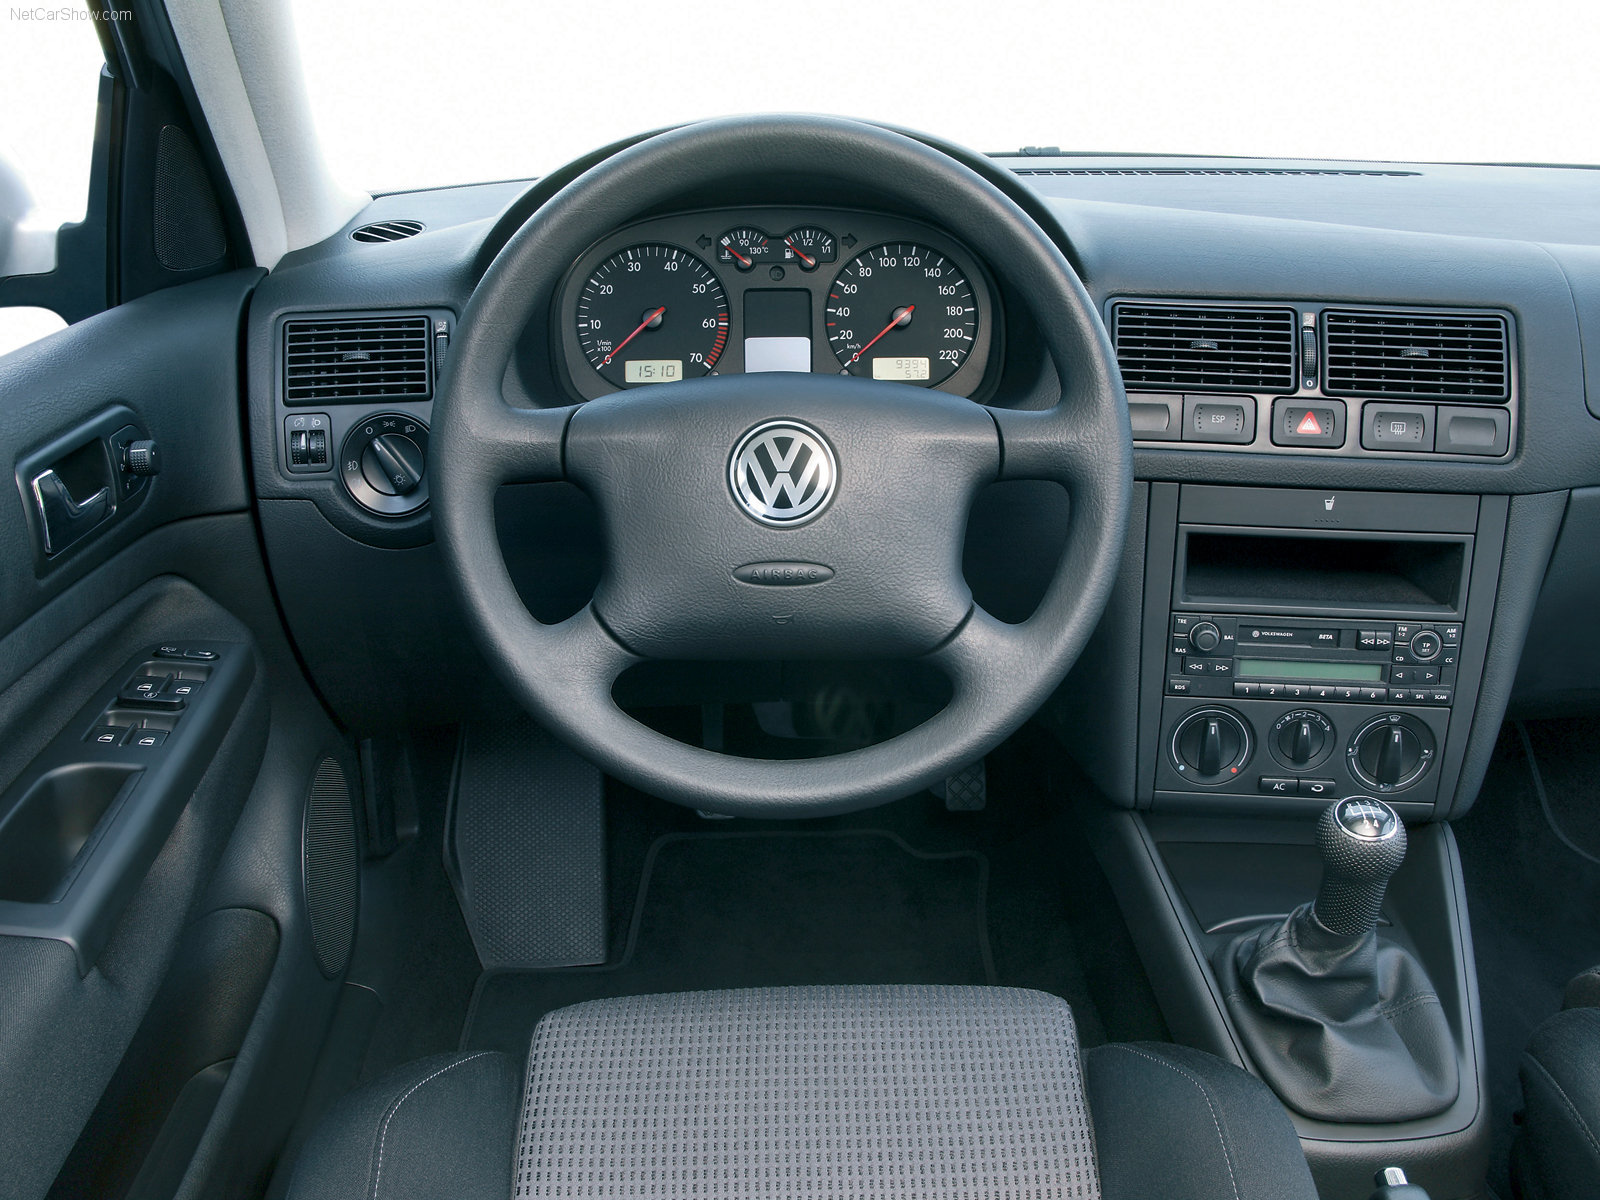 Volkswagen golf 4 photos reviews news specs buy car for Accessoire auto interieur